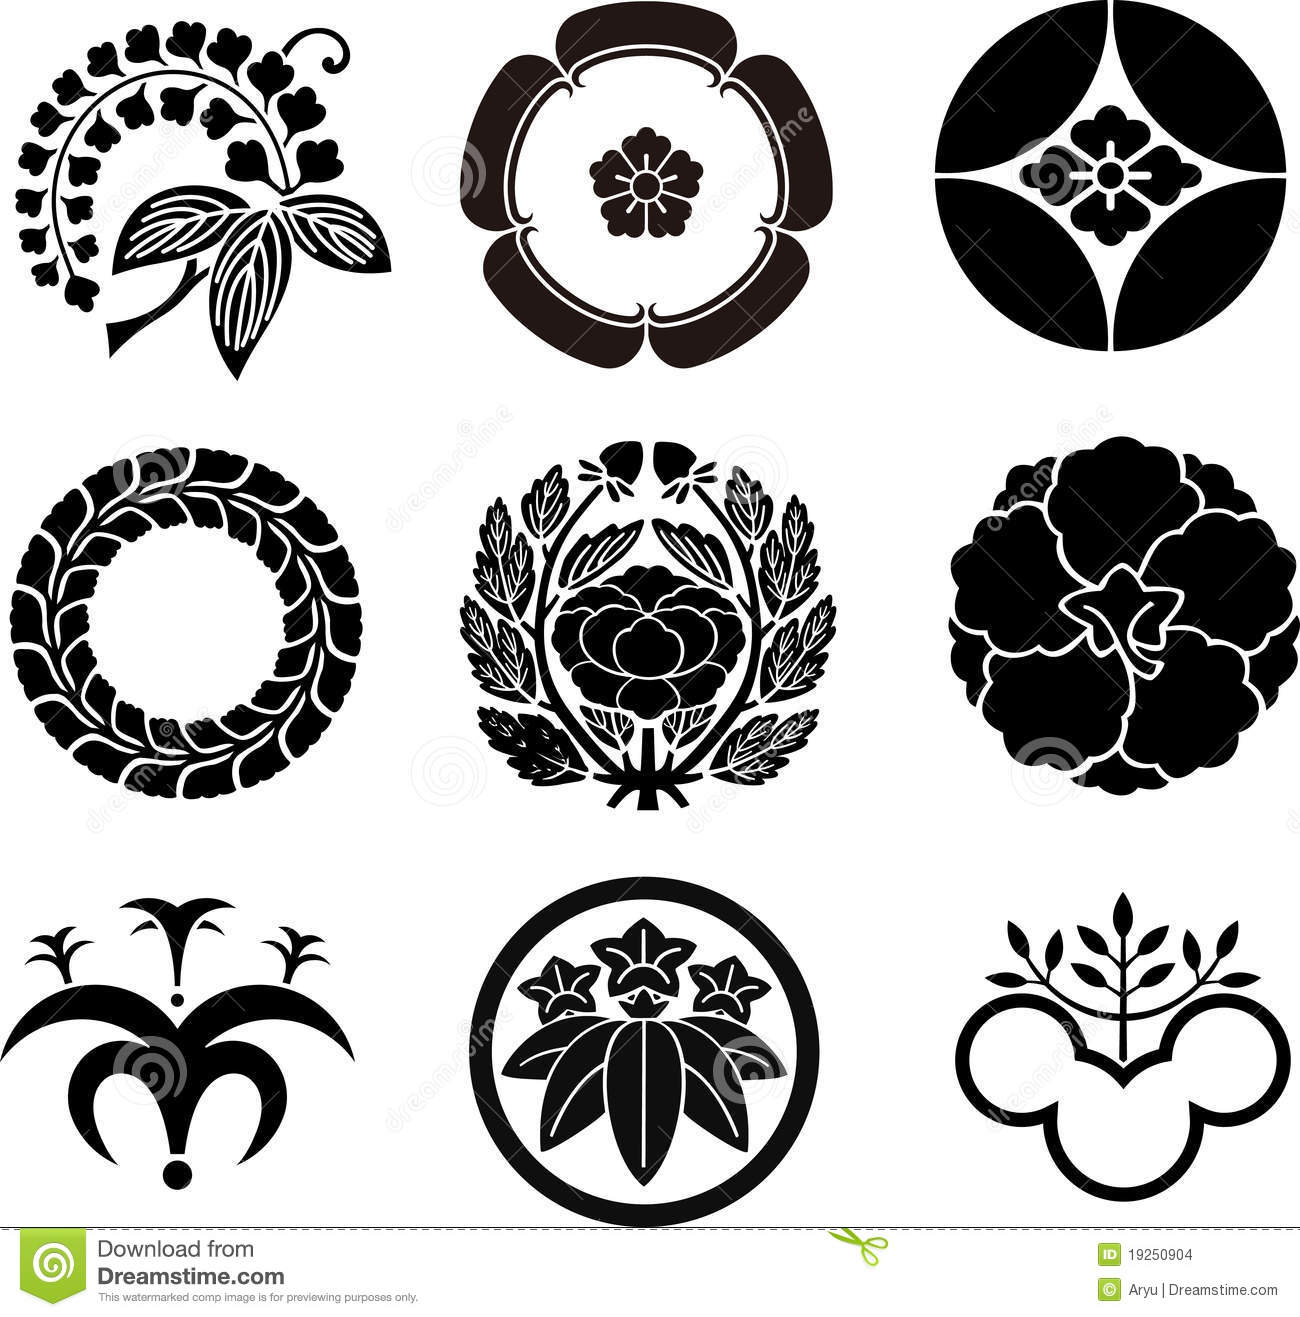 Free family crest cliparts, download free clip art, free clip art.